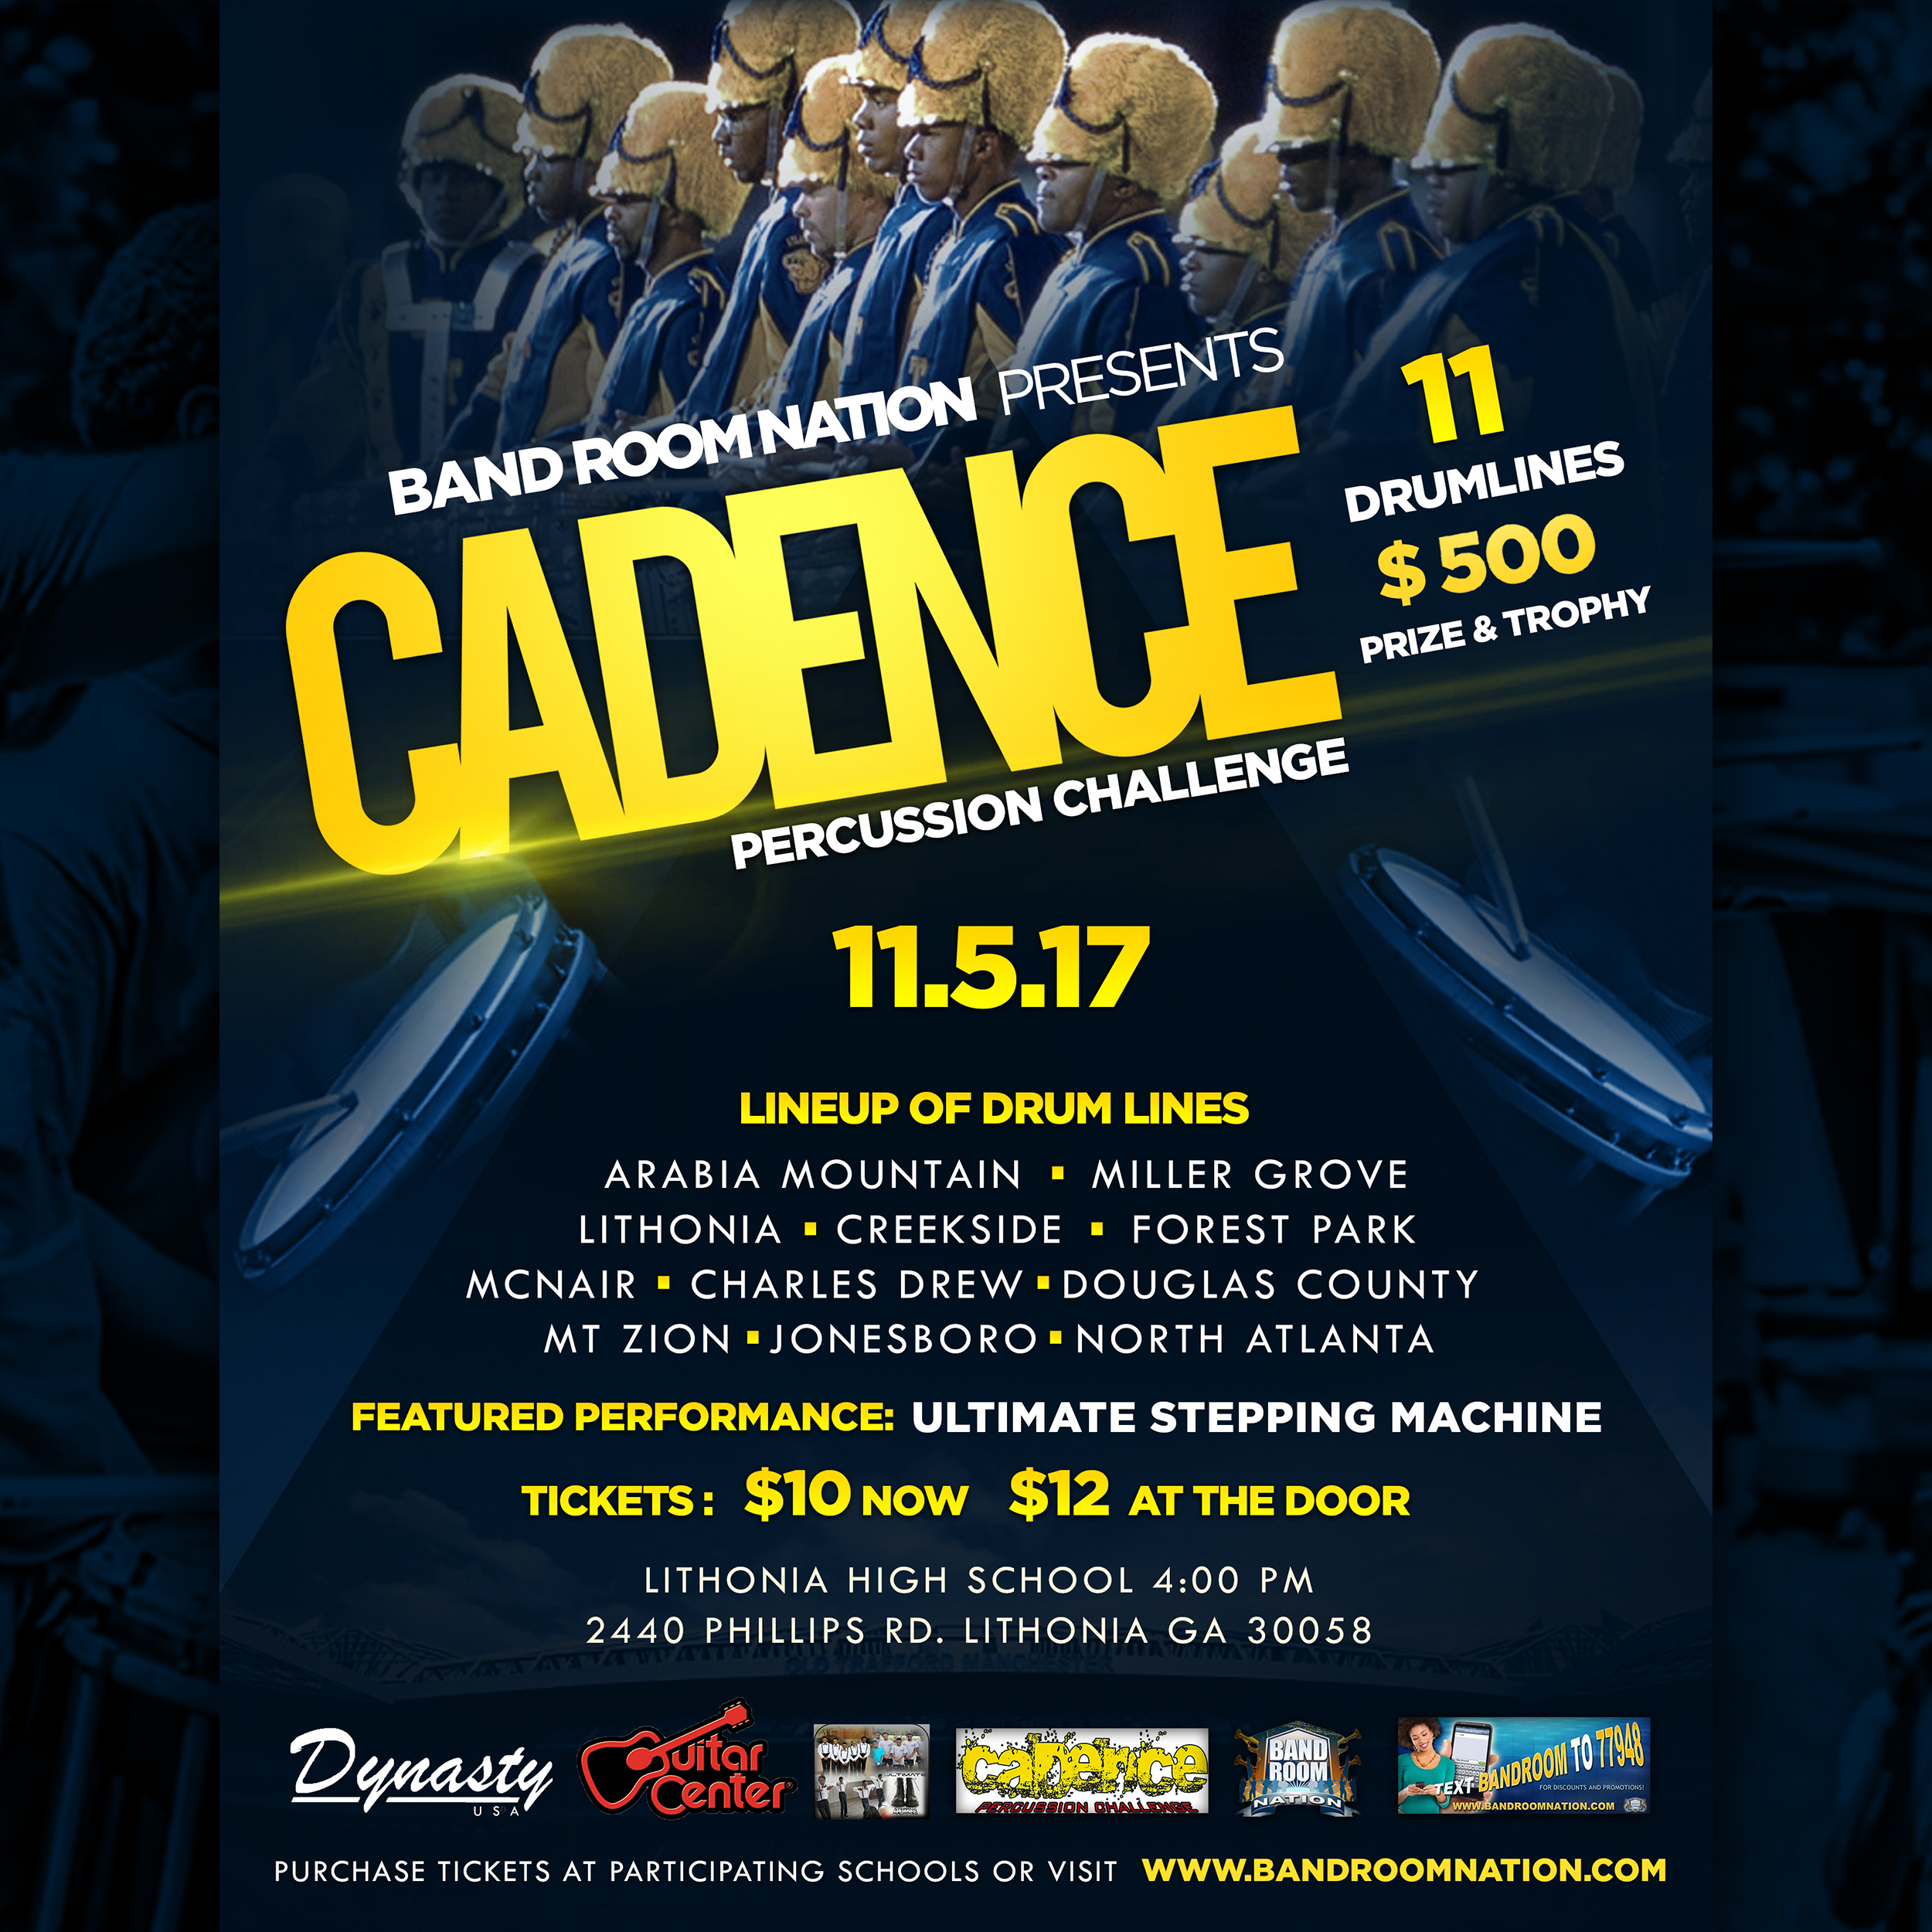 FOR SOCIAL MEDIA Band Room Nation 2017 Cadence Percussion Challenge Official Flyer